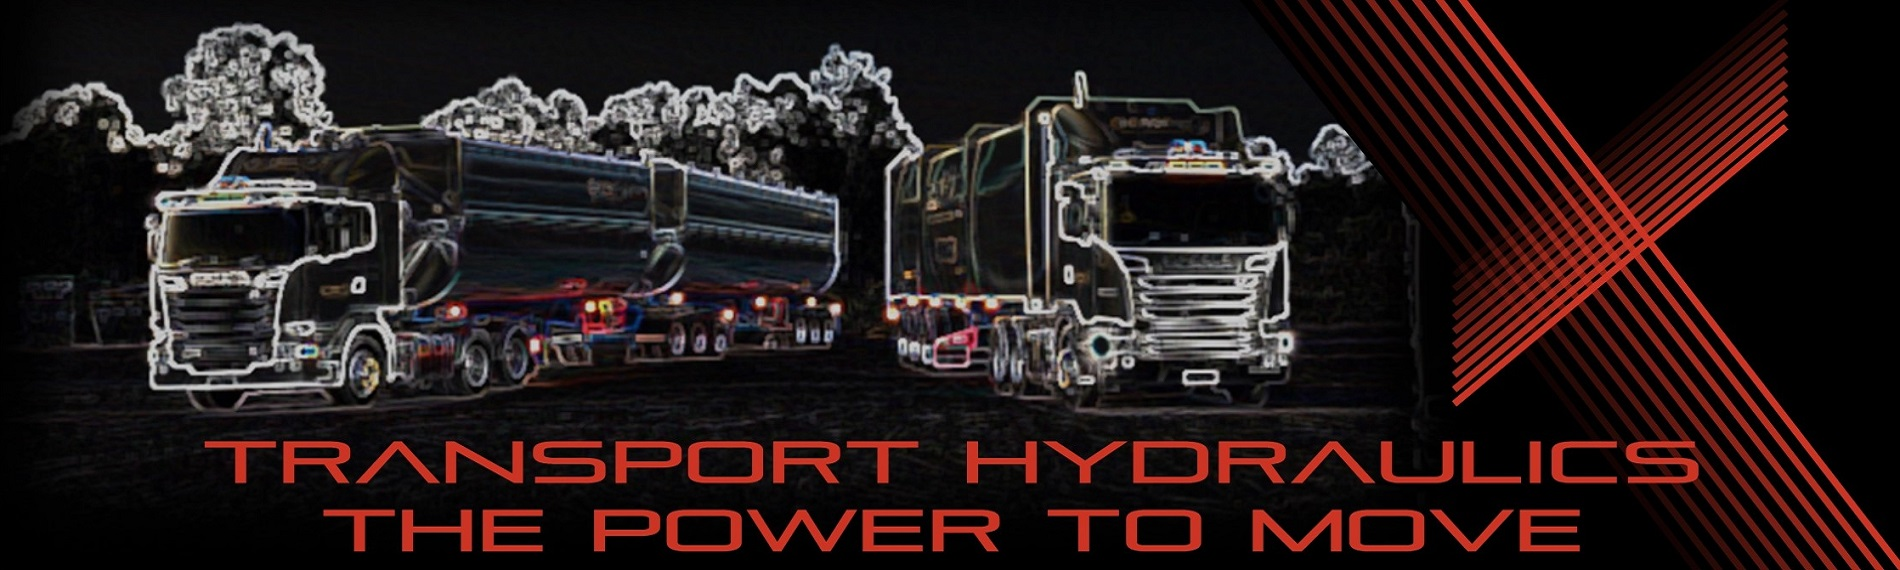 Transport Hydraulics-The Power to Move